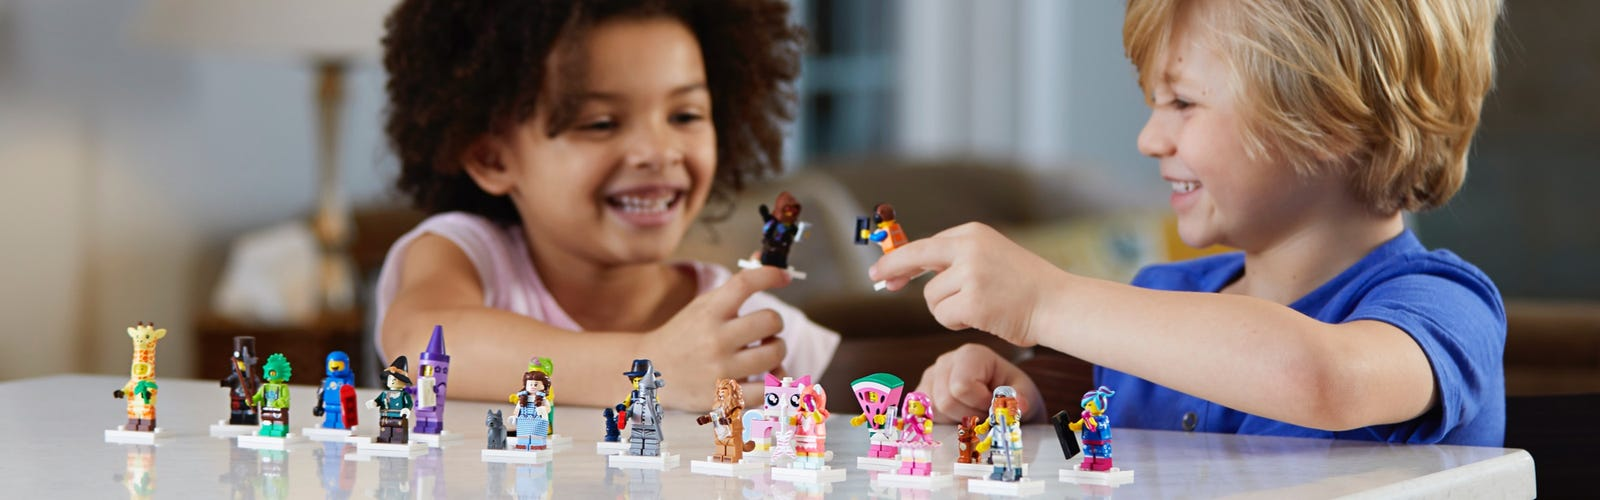 Kids playing with LEGO® Minifigures